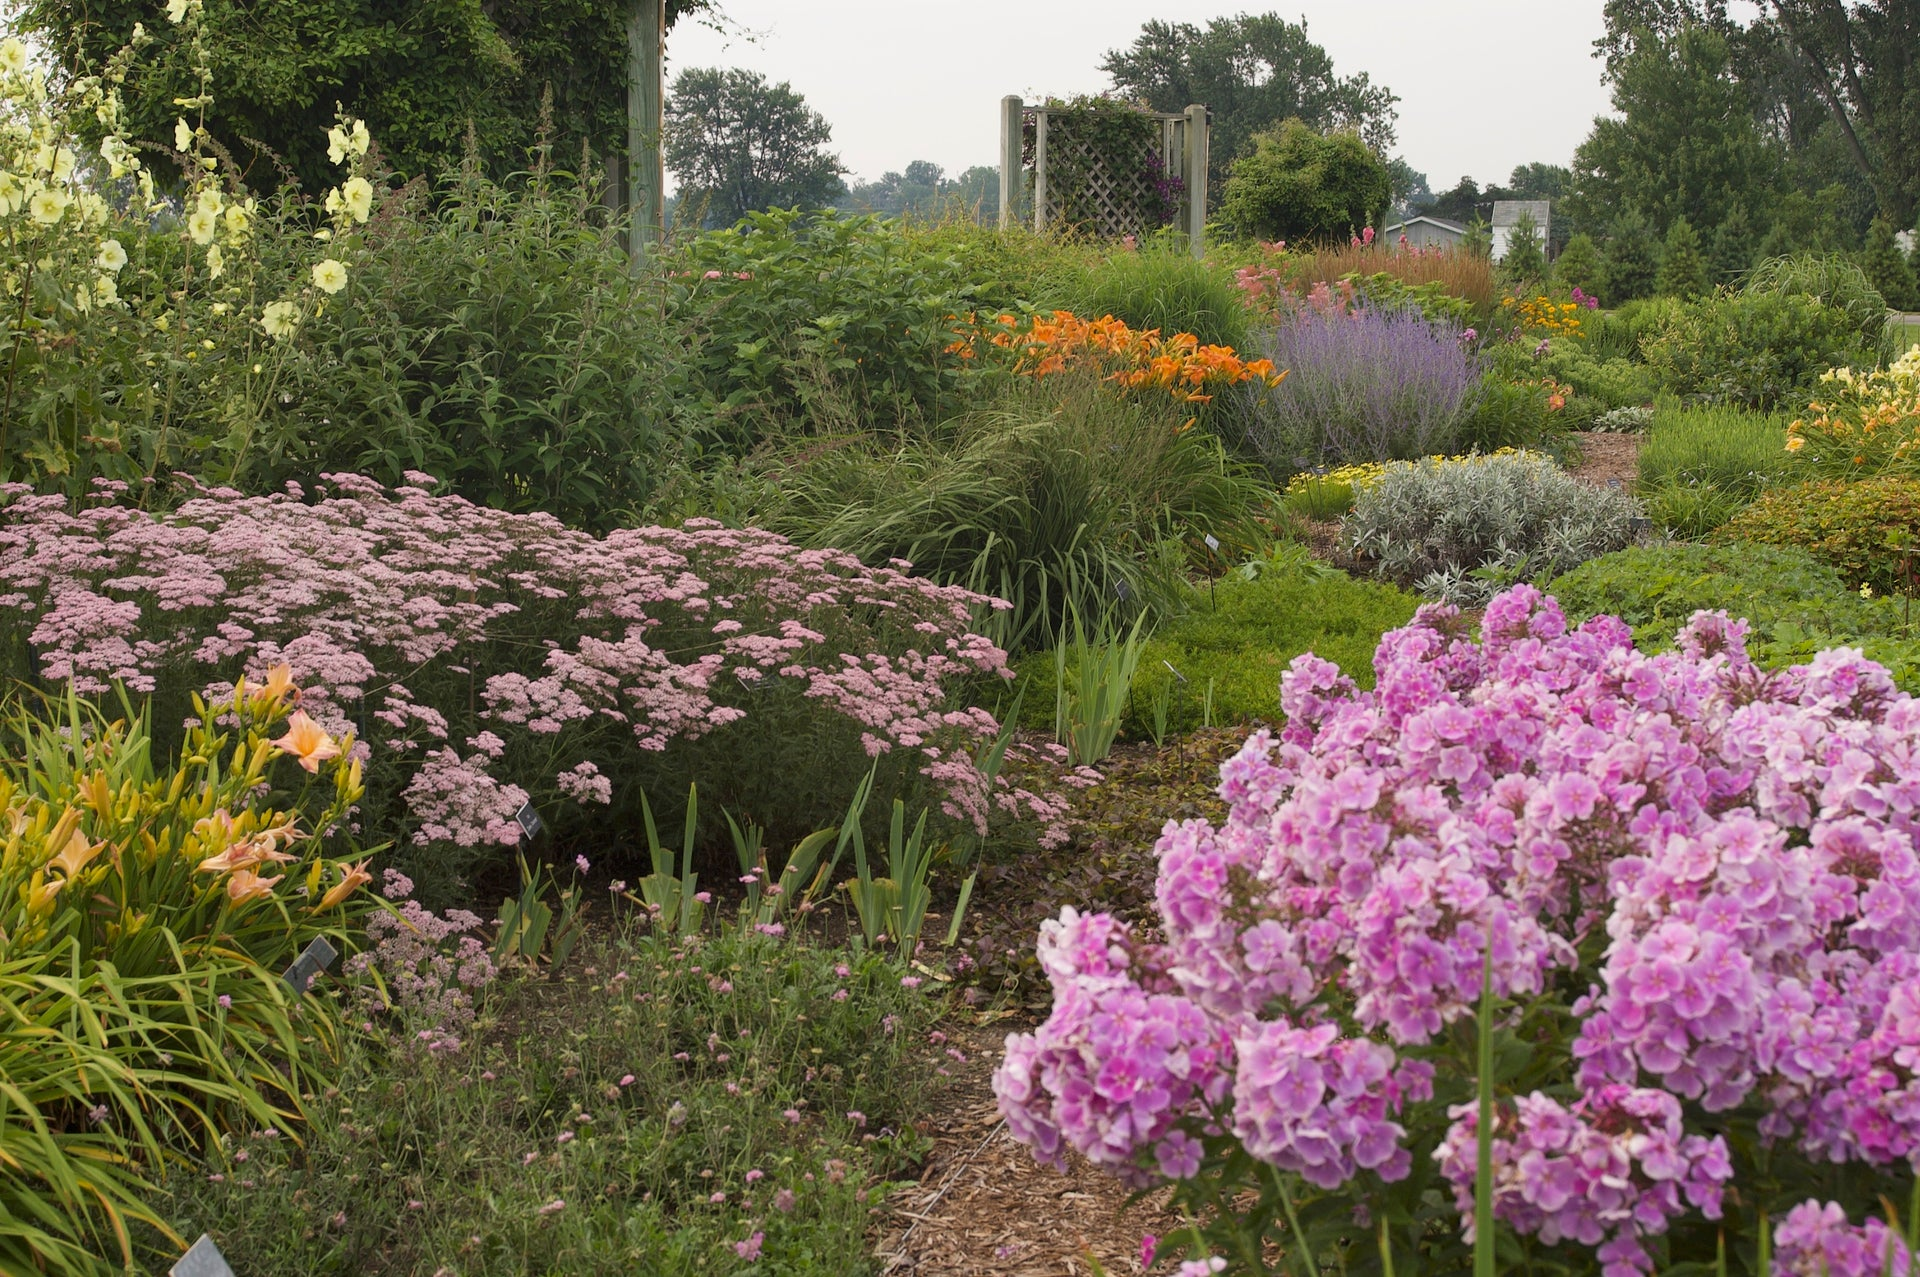 Pink and Purple Perennials in a Flower Garden